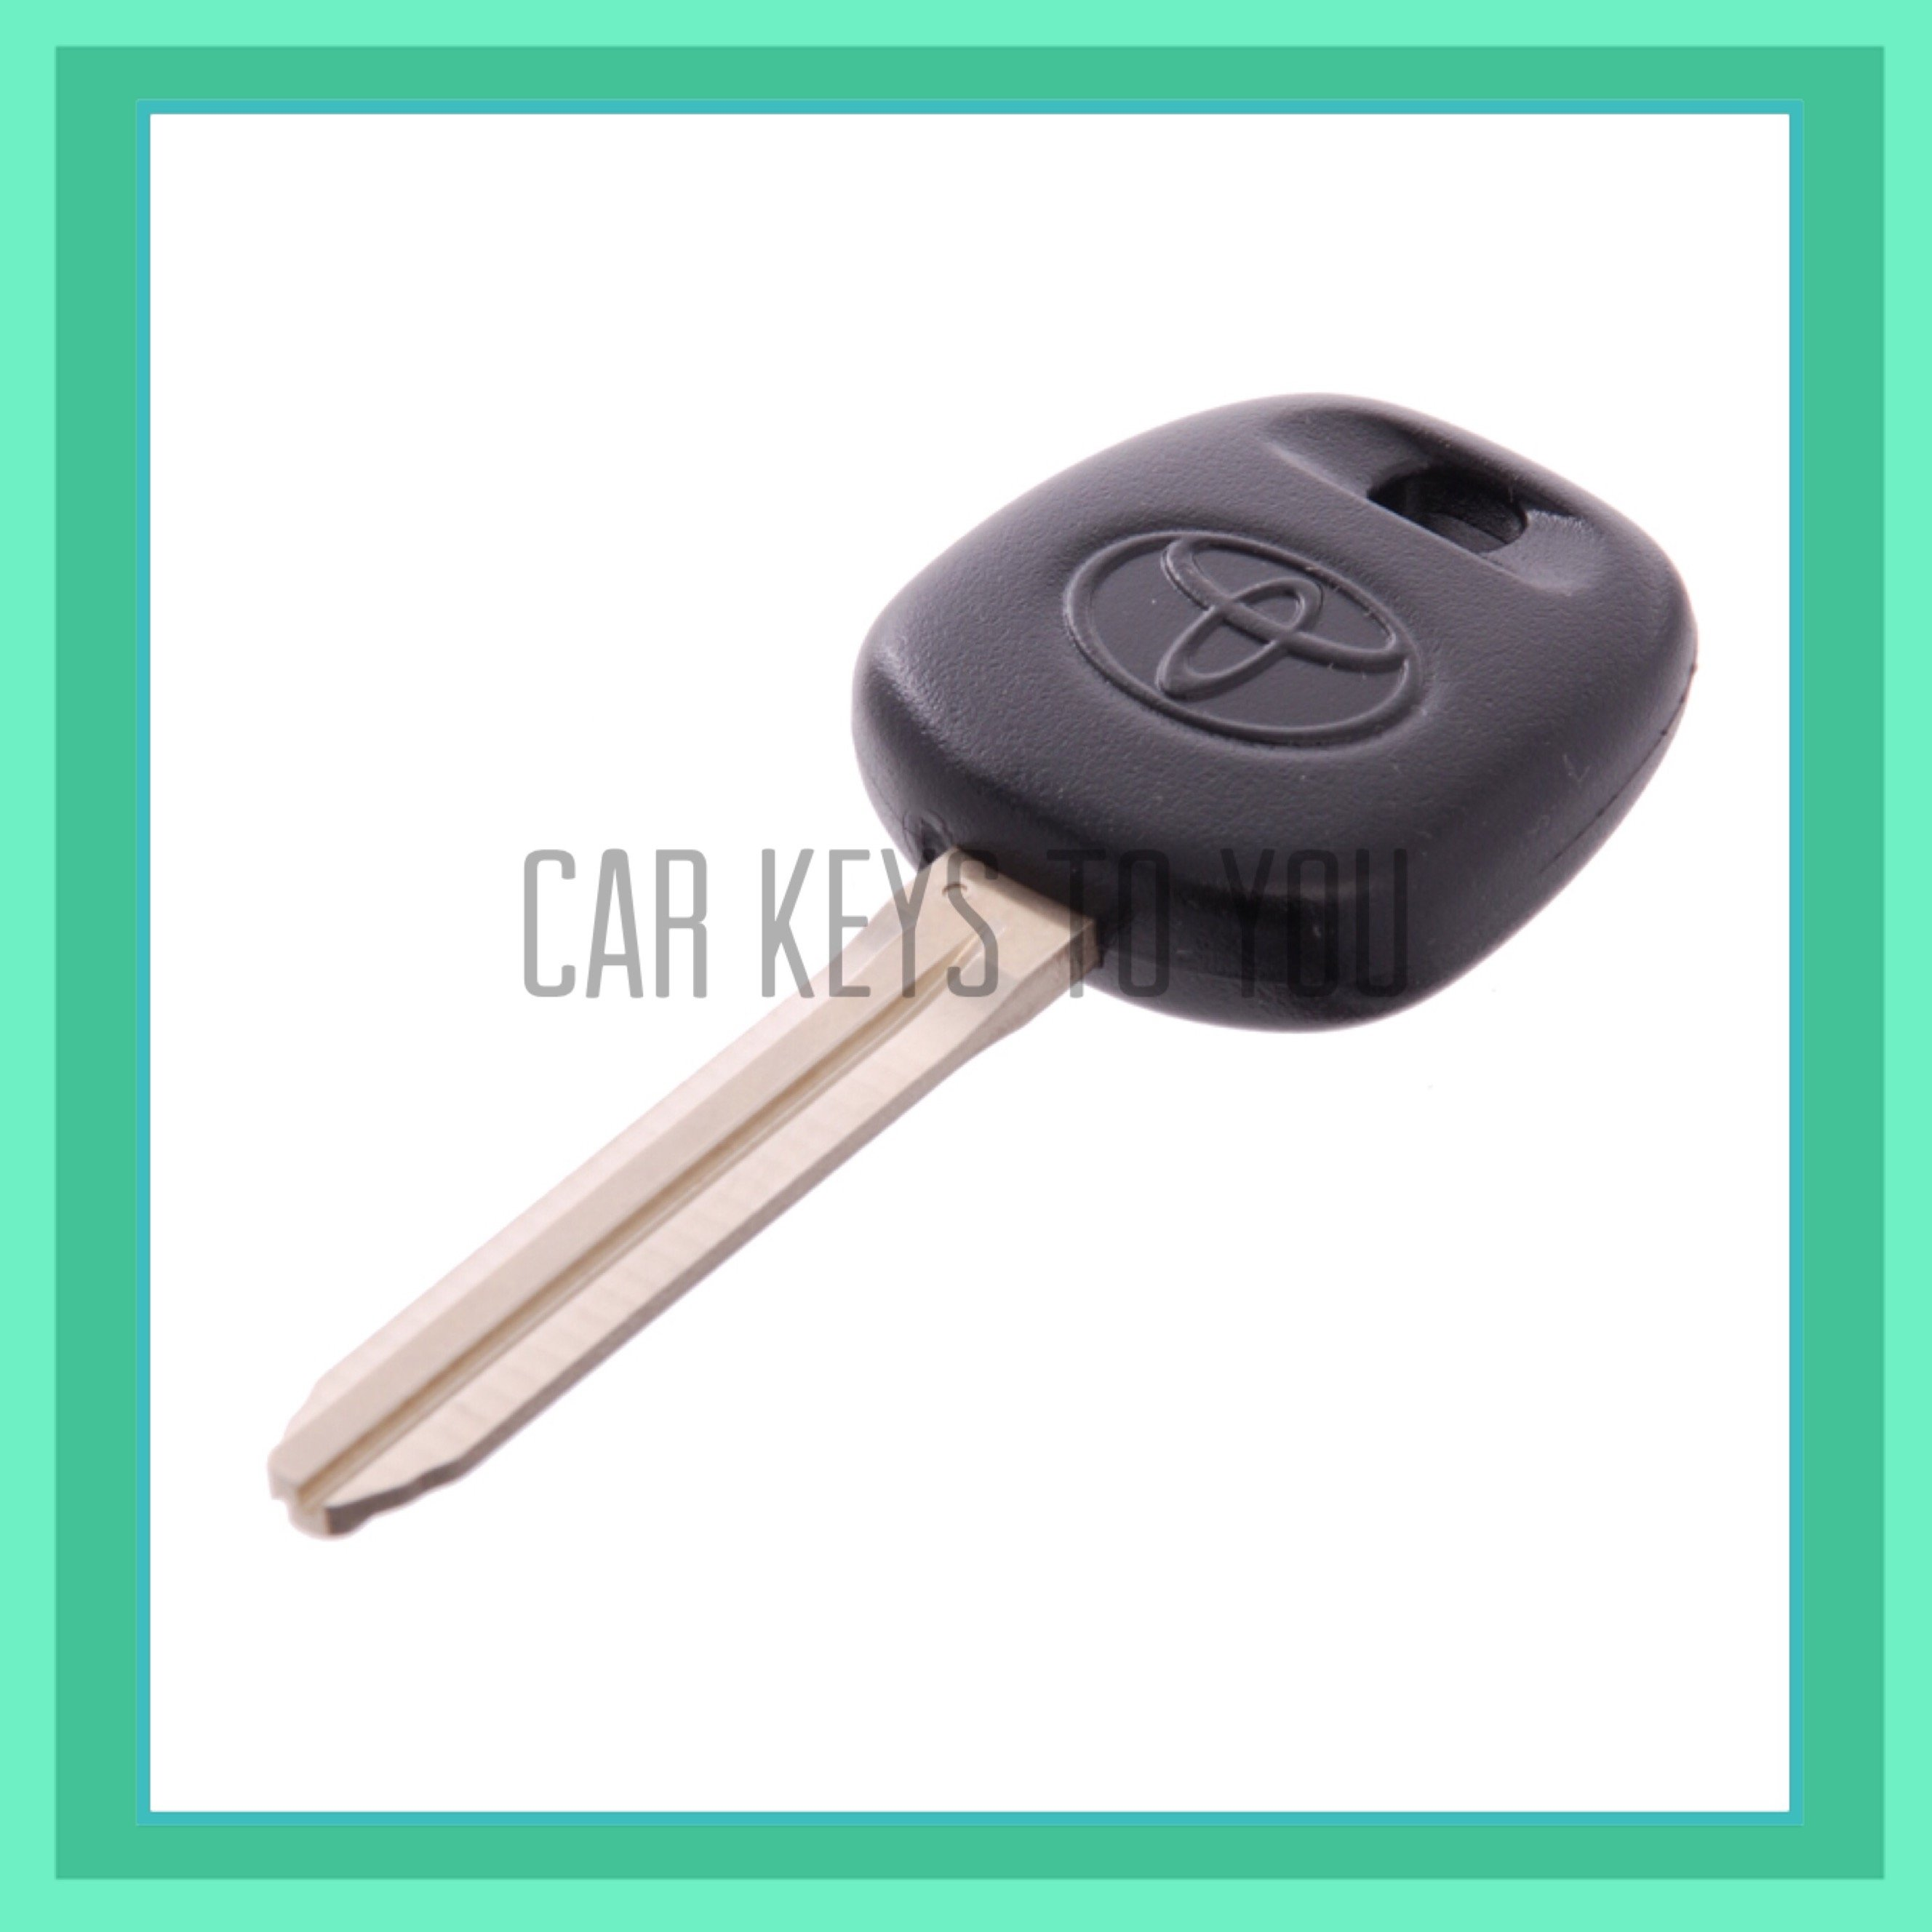 Toyota Rav 4 Car Key and Remote, Suit 2006 to 2007